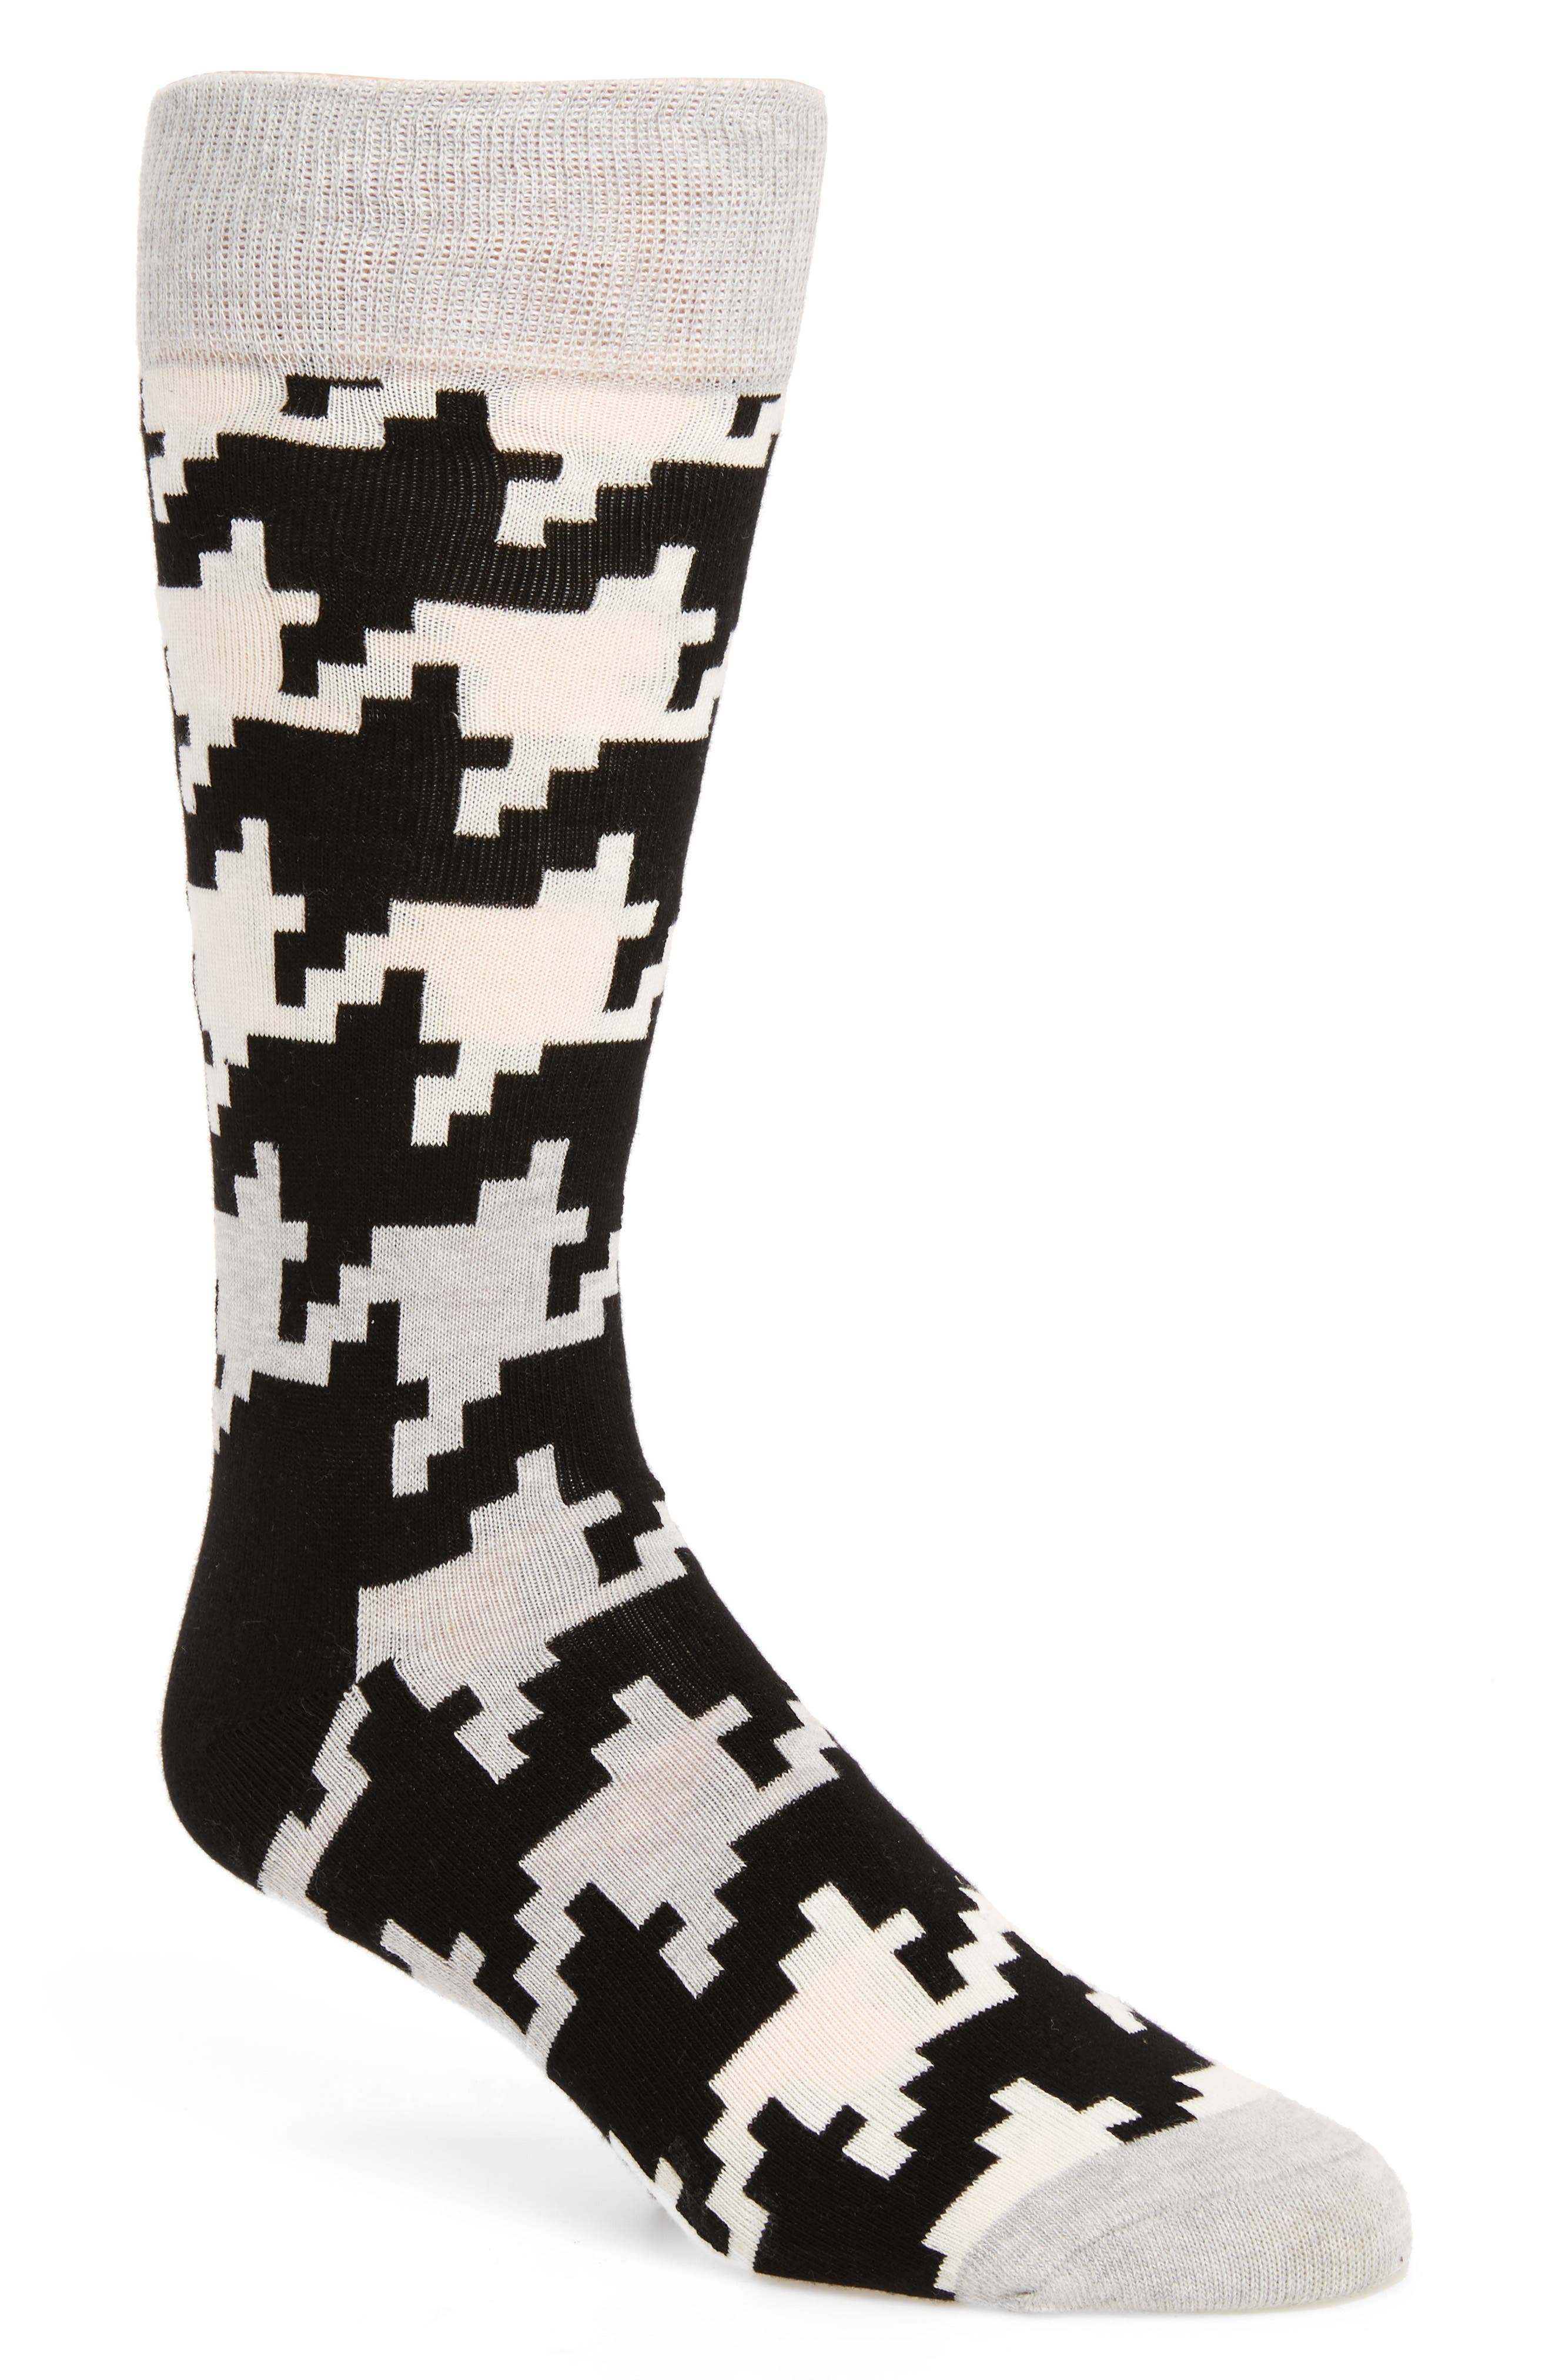 Digital Houndstooth Socks,                         Main,                         color, 001